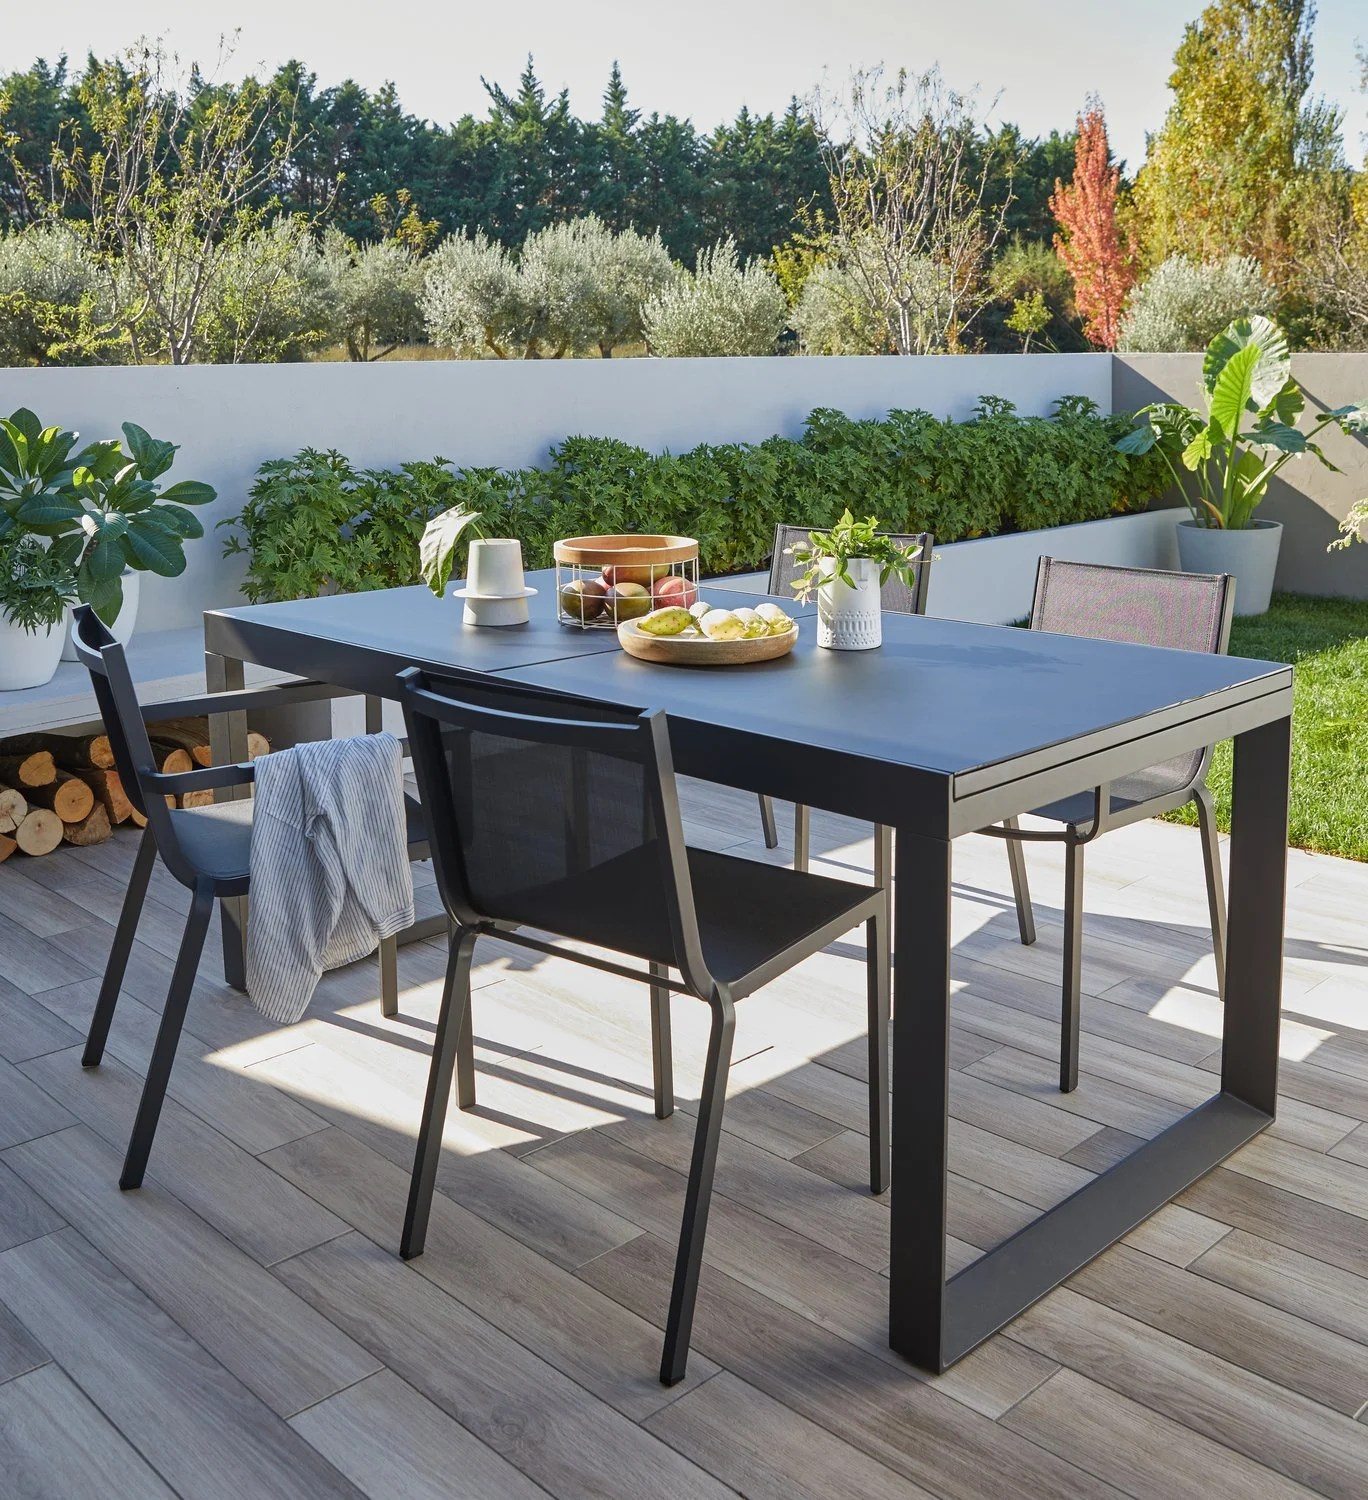 Mobilier Exterieur Tunisie La Nouvelle Collection De Salon De Jardin 2019 Leroy Merlin